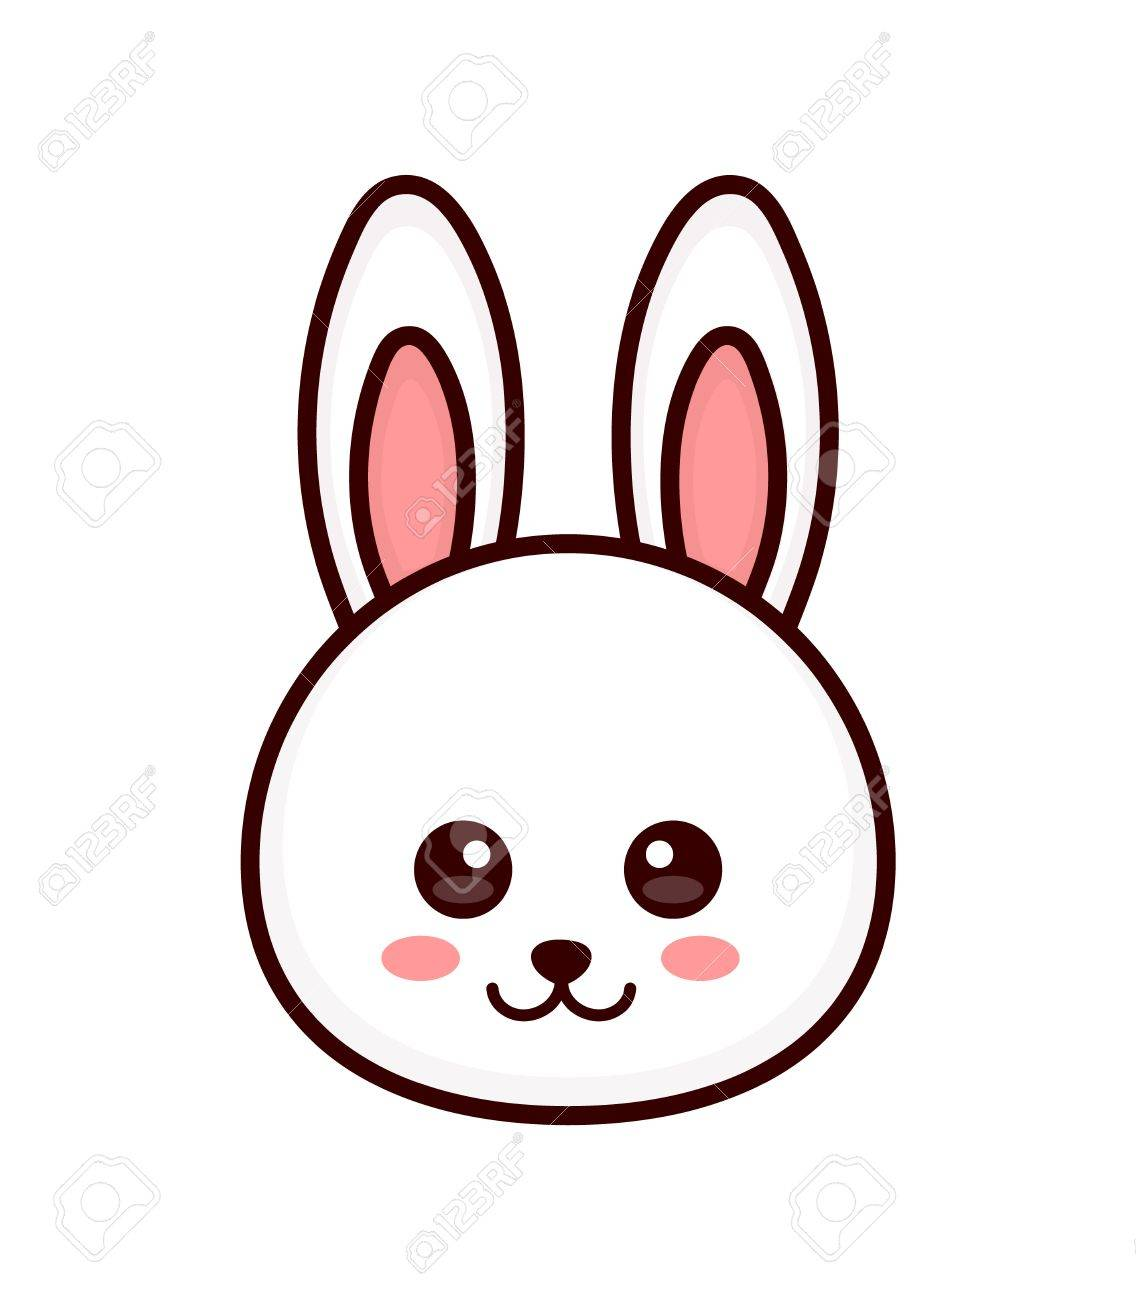 1136x1300 Trend Bunny Face Outline Cute Rabbit Vector Modern Line Flat Style